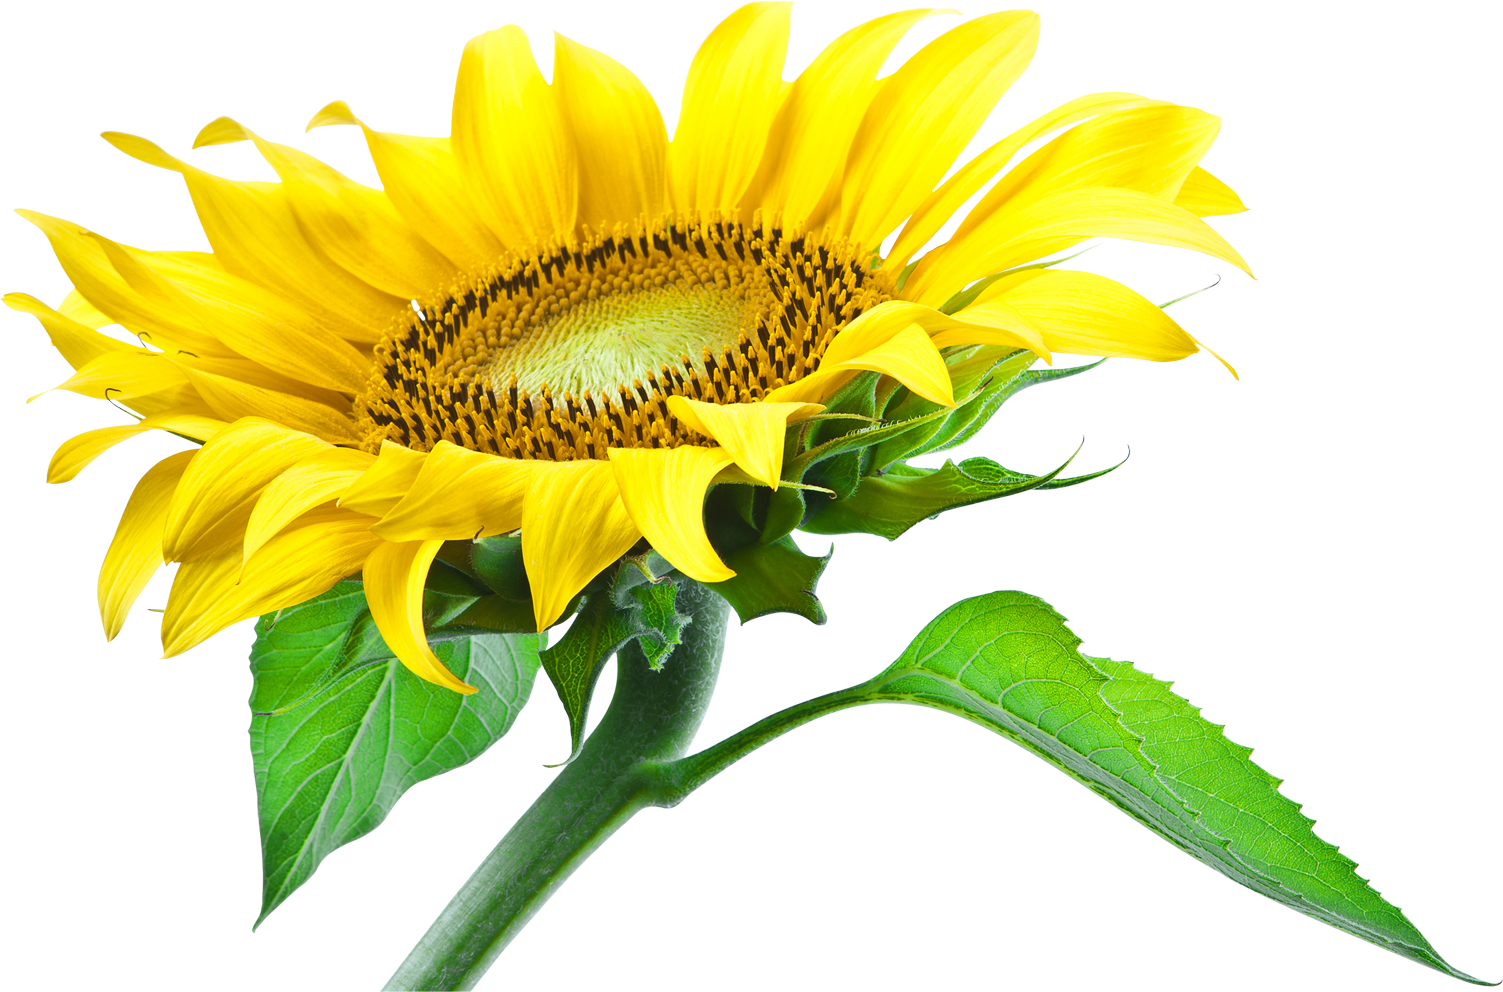 Sun flower seed clipart png black and white library Sunflower PNG images transparent background png black and white library